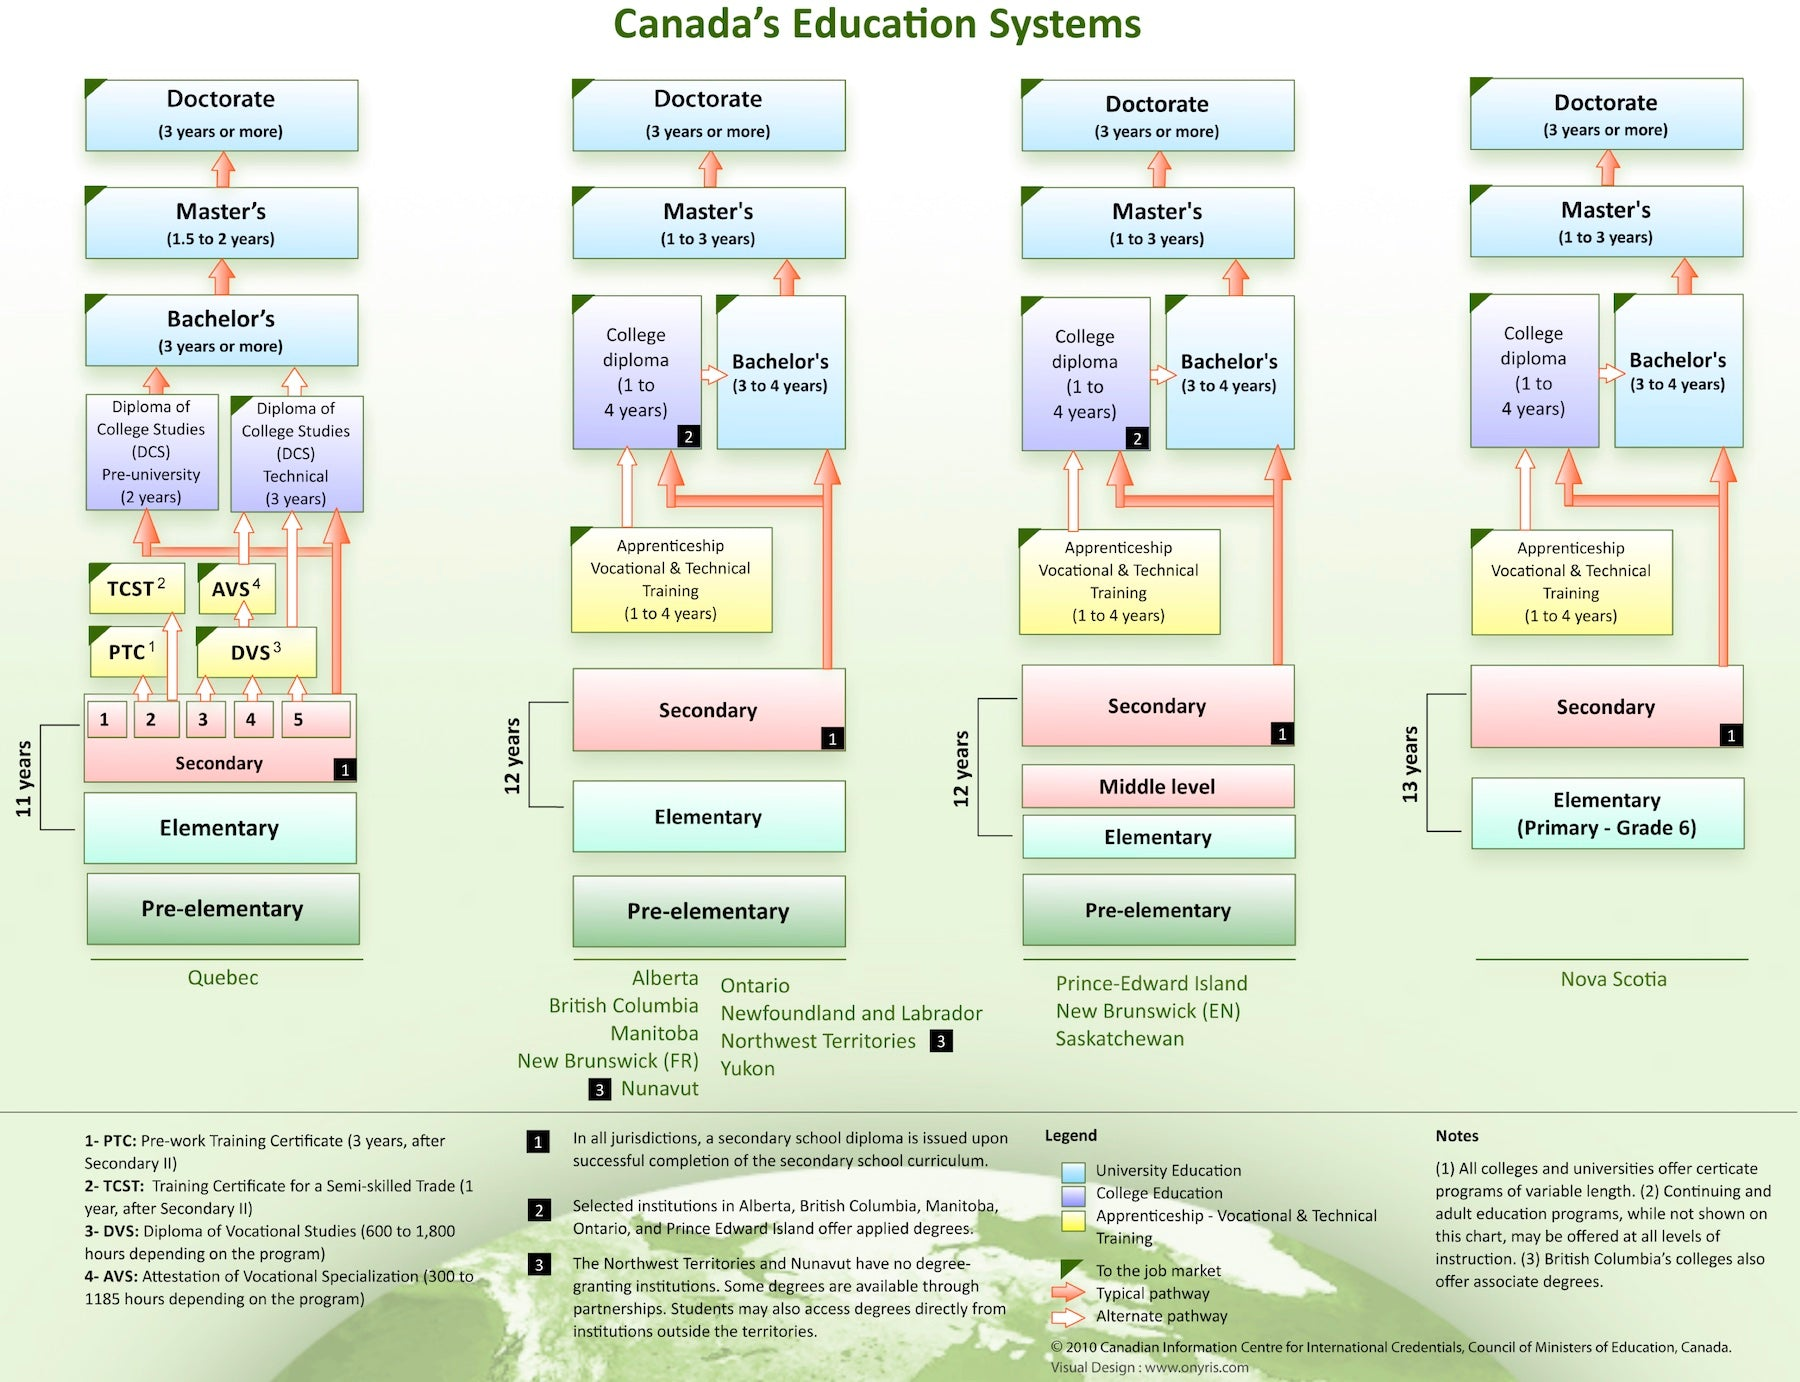 Canada's Education Systems